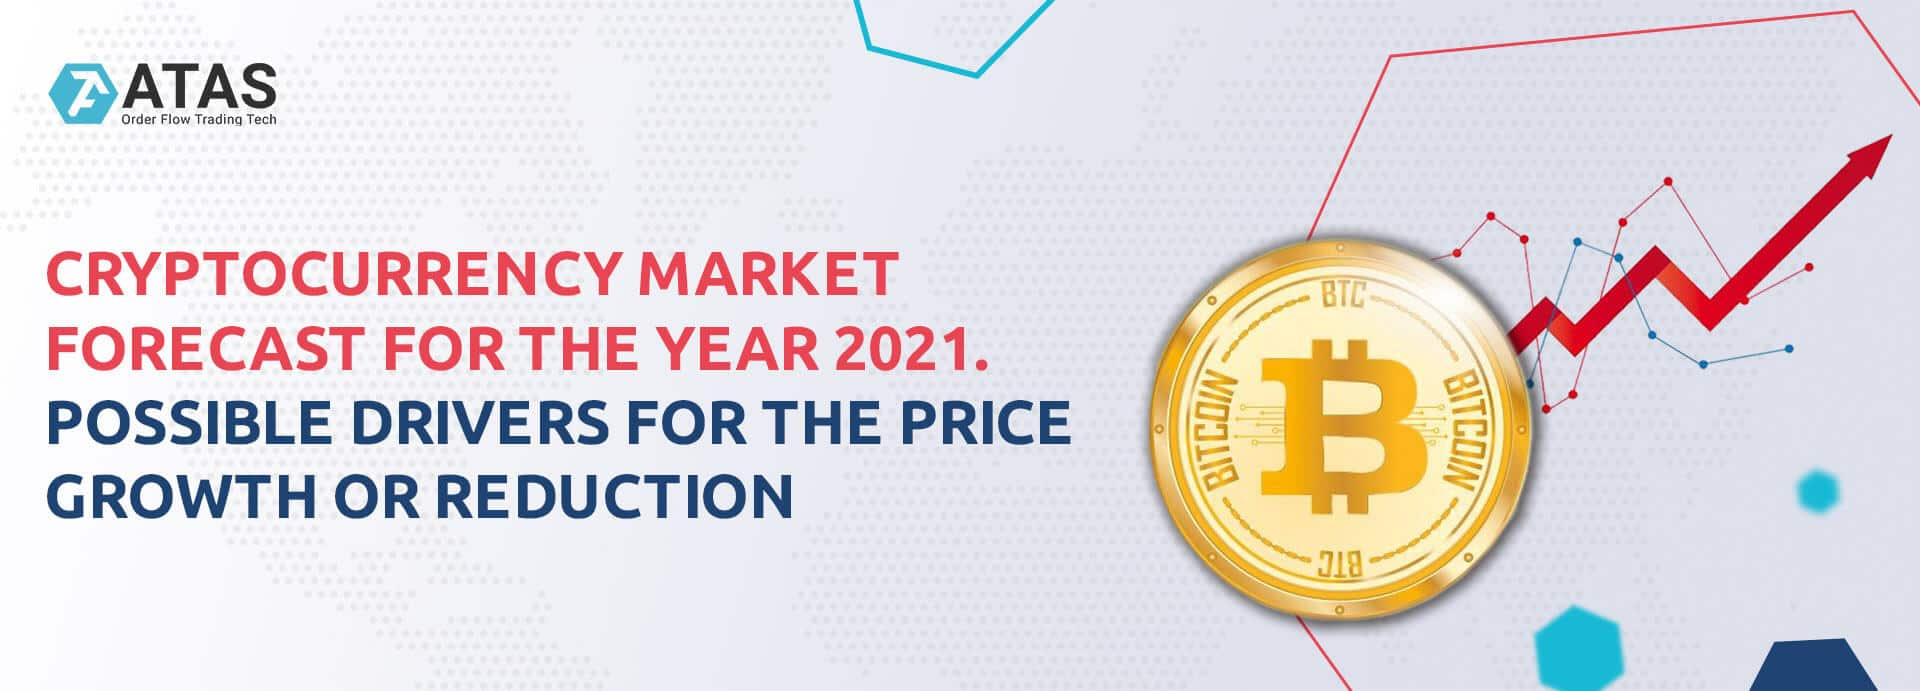 Cryptocurrency market forecast for the year 2021. Possible drivers for the price growth or reduction